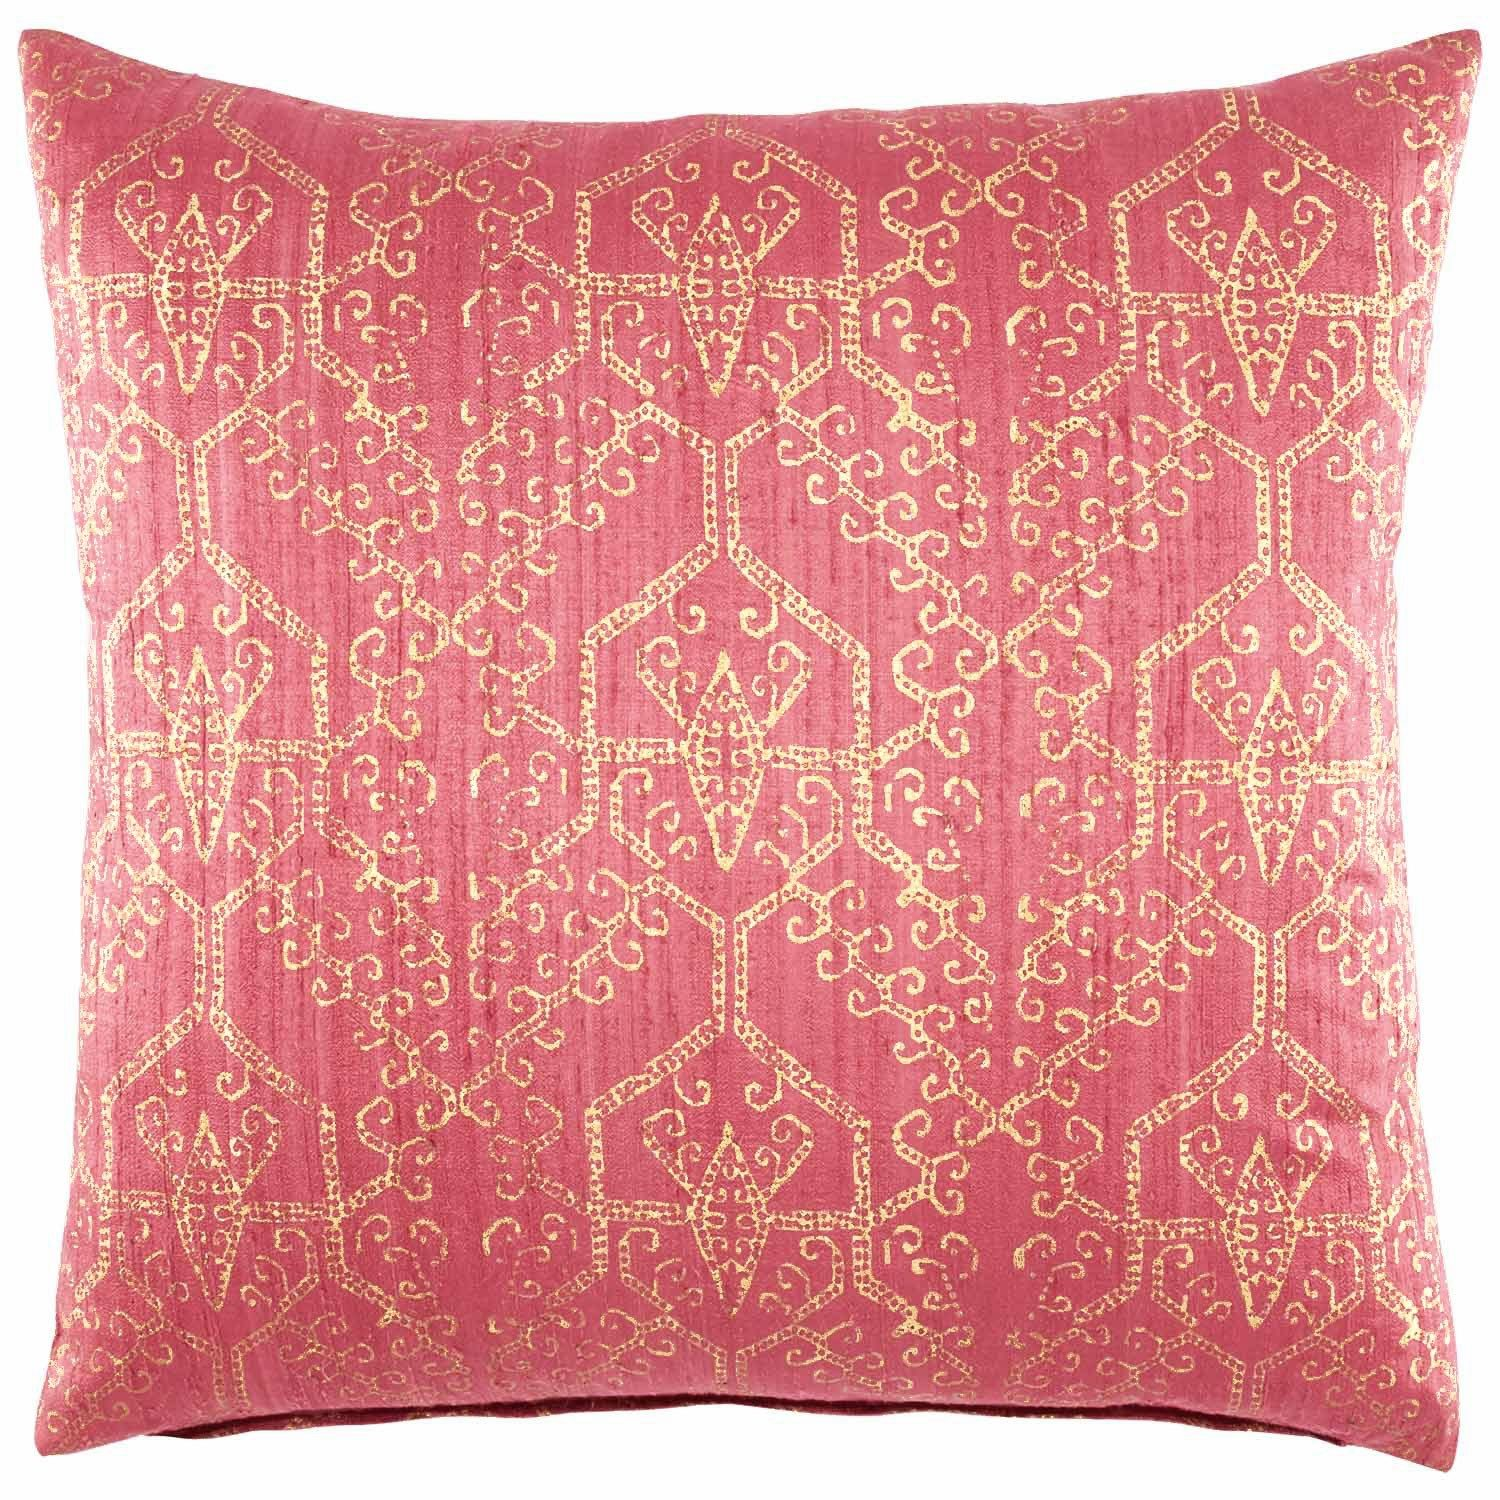 Mutabi Decorative Pillow by John Robshaw